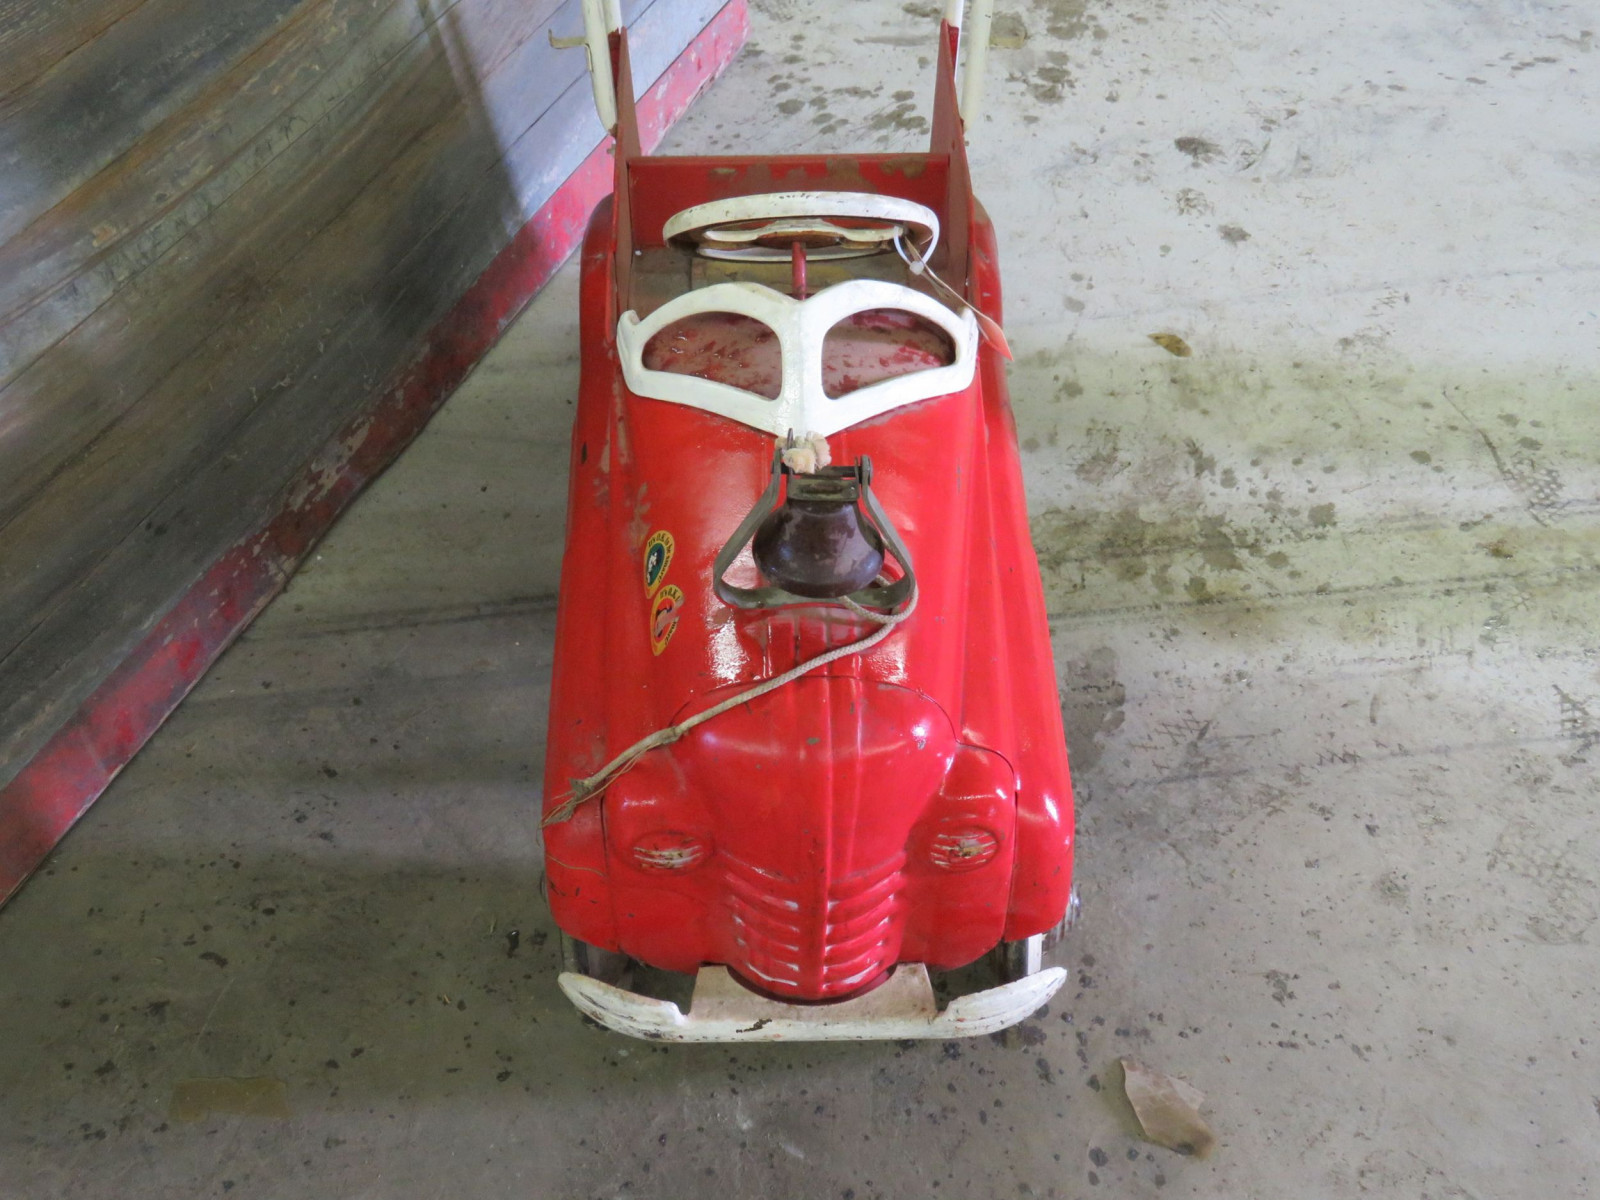 Vintage Murray Fire Chief pedal Car for Restore - Image 2